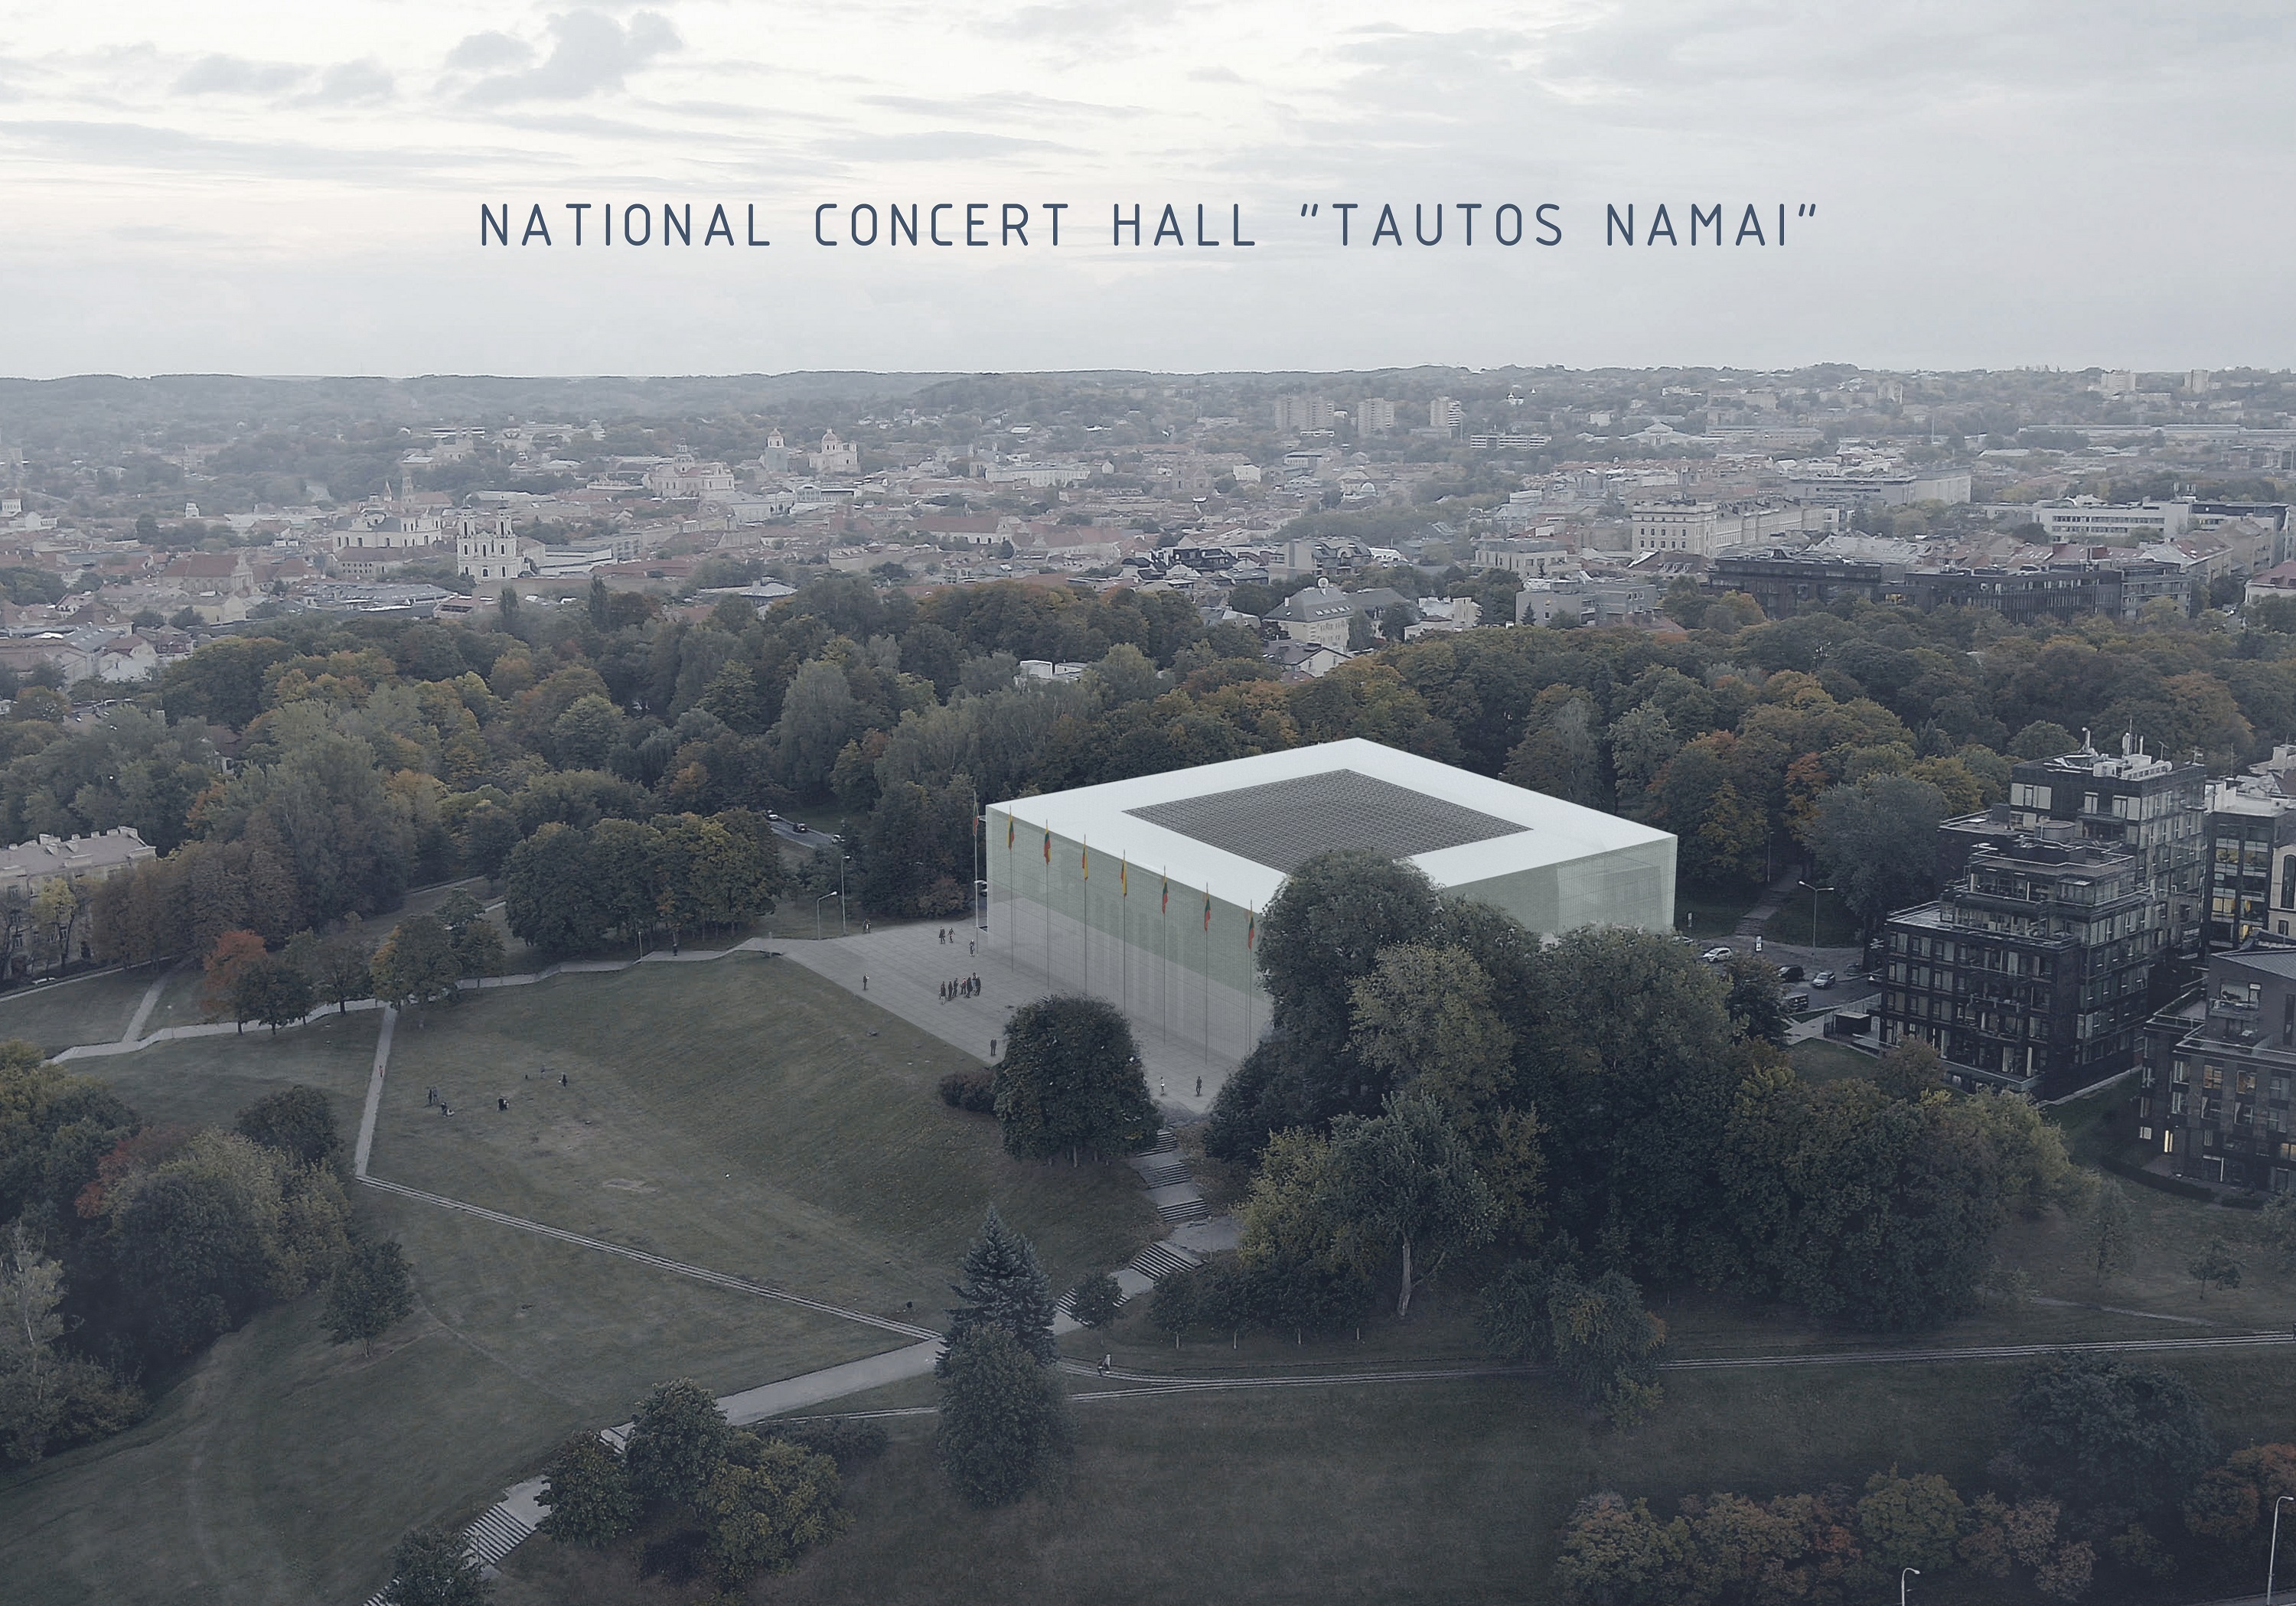 http://miragearchitects.ir/index.php/projects/lithuanian-national-concert-hall/